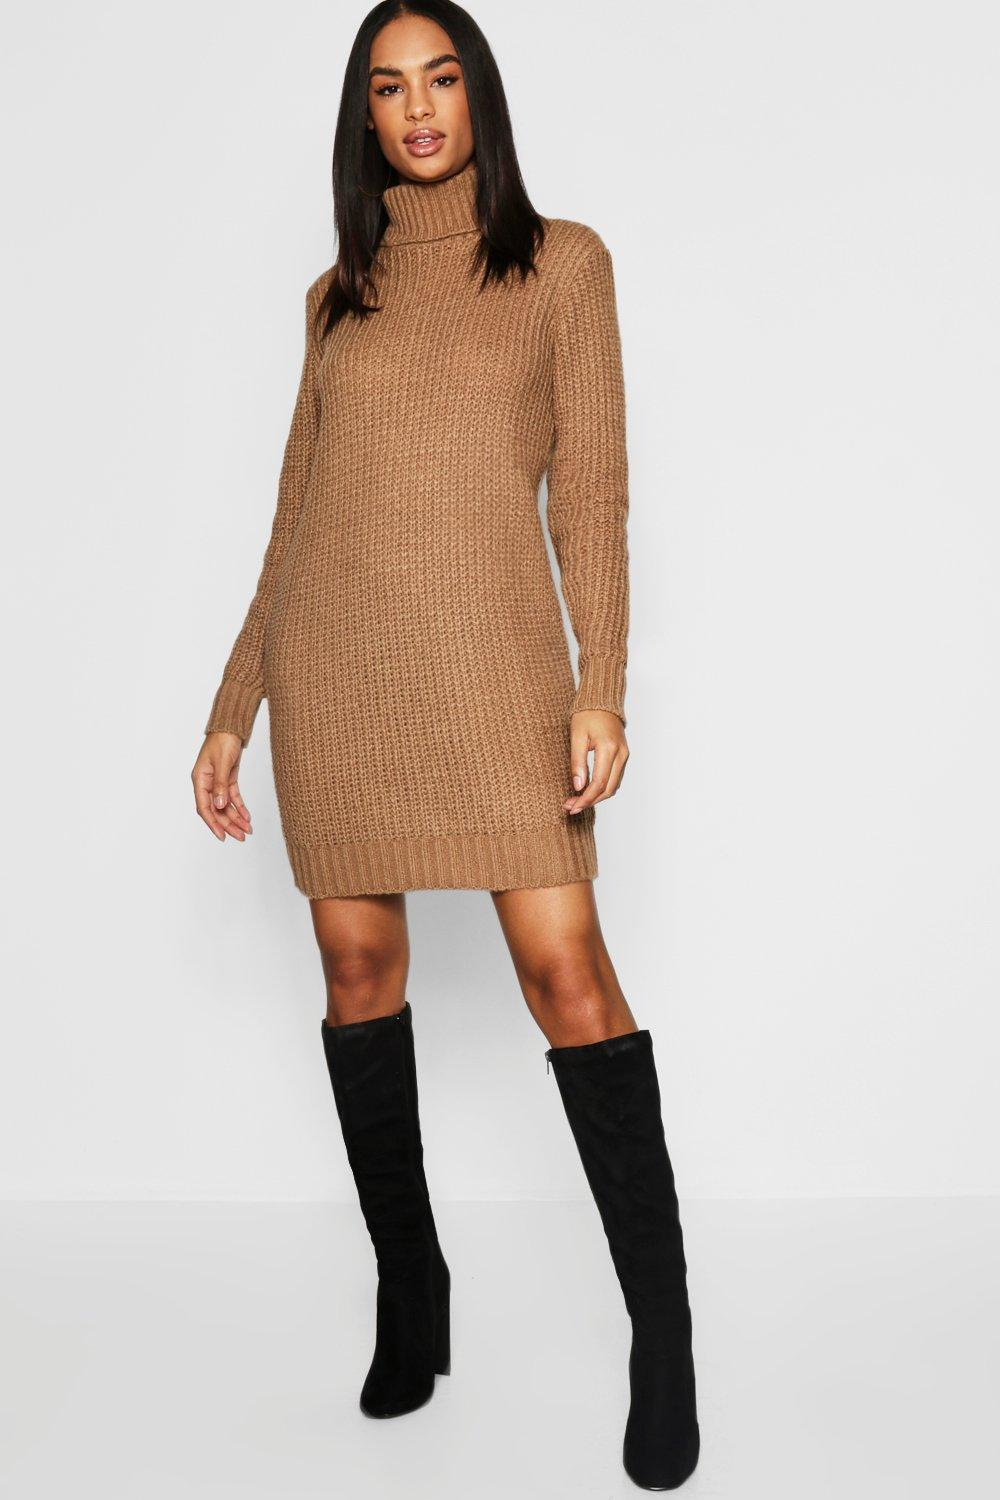 Boohoo Tall Soft Knit Roll Neck Sweater Dress in Brown - Lyst 3588fa923